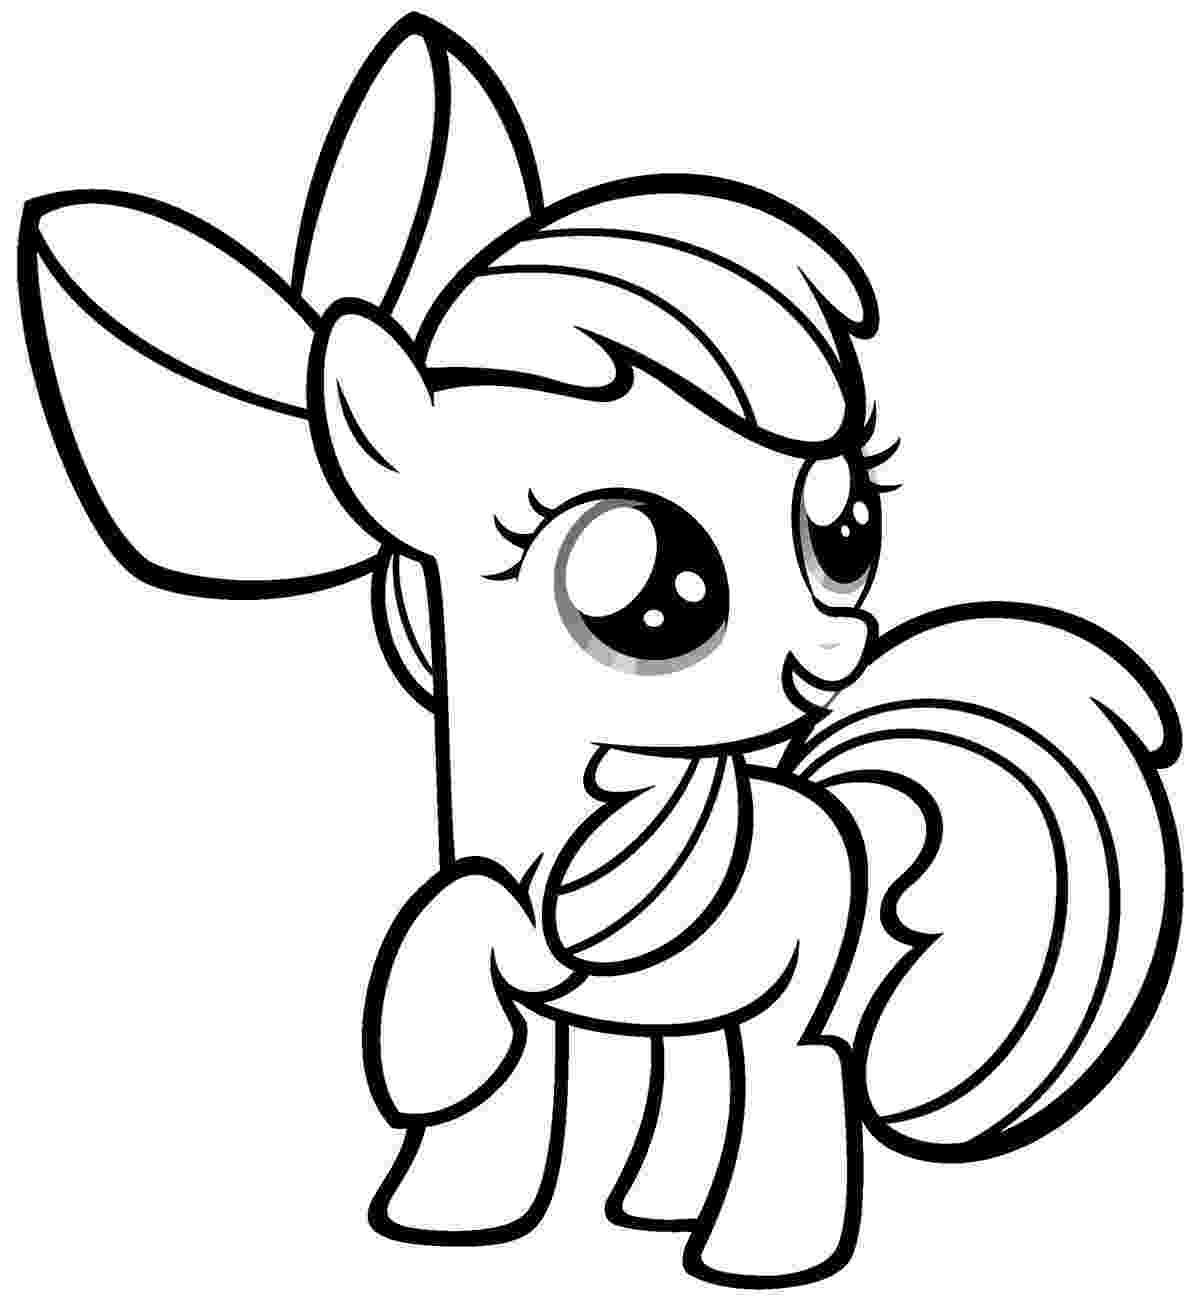 mlp coloring book games 38 coloring pages of my little pony my little pony mlp games book coloring